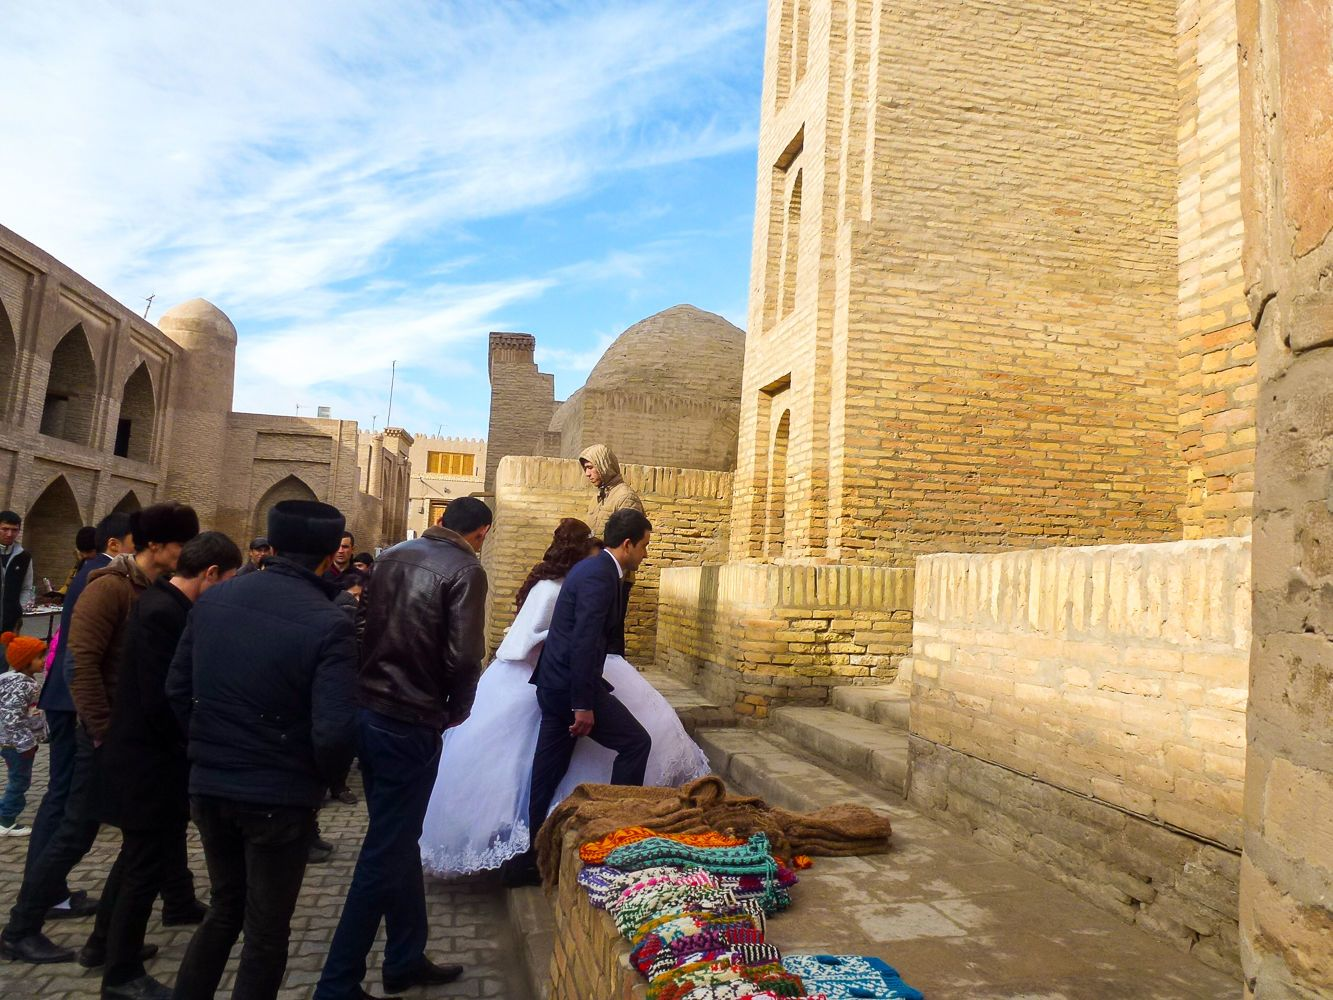 local wedding in Khiva, Uzbekistan